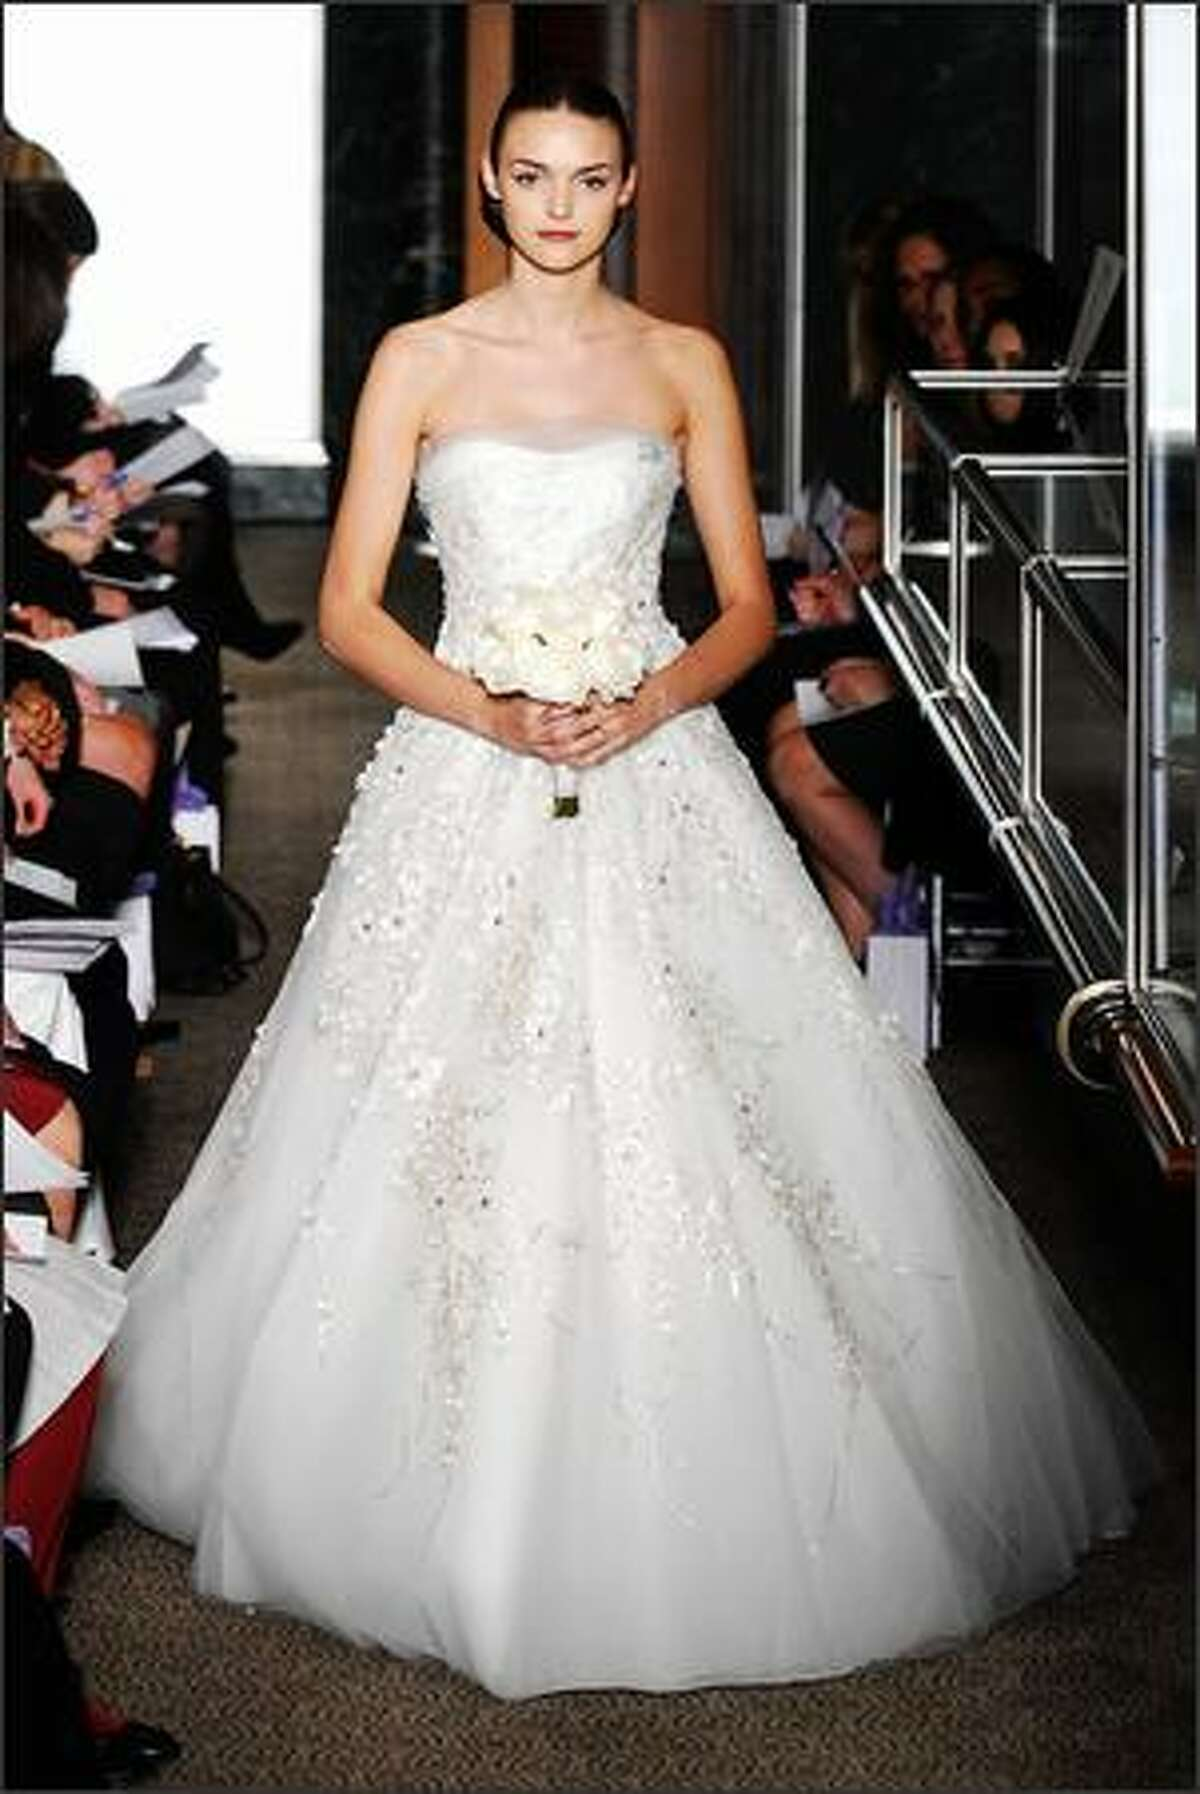 A model walks the runway at the Carolina Herrera Spring 2010 Bridal Collection at Tiffany & Co., Fifth Avenue Flagship Store in New York City.